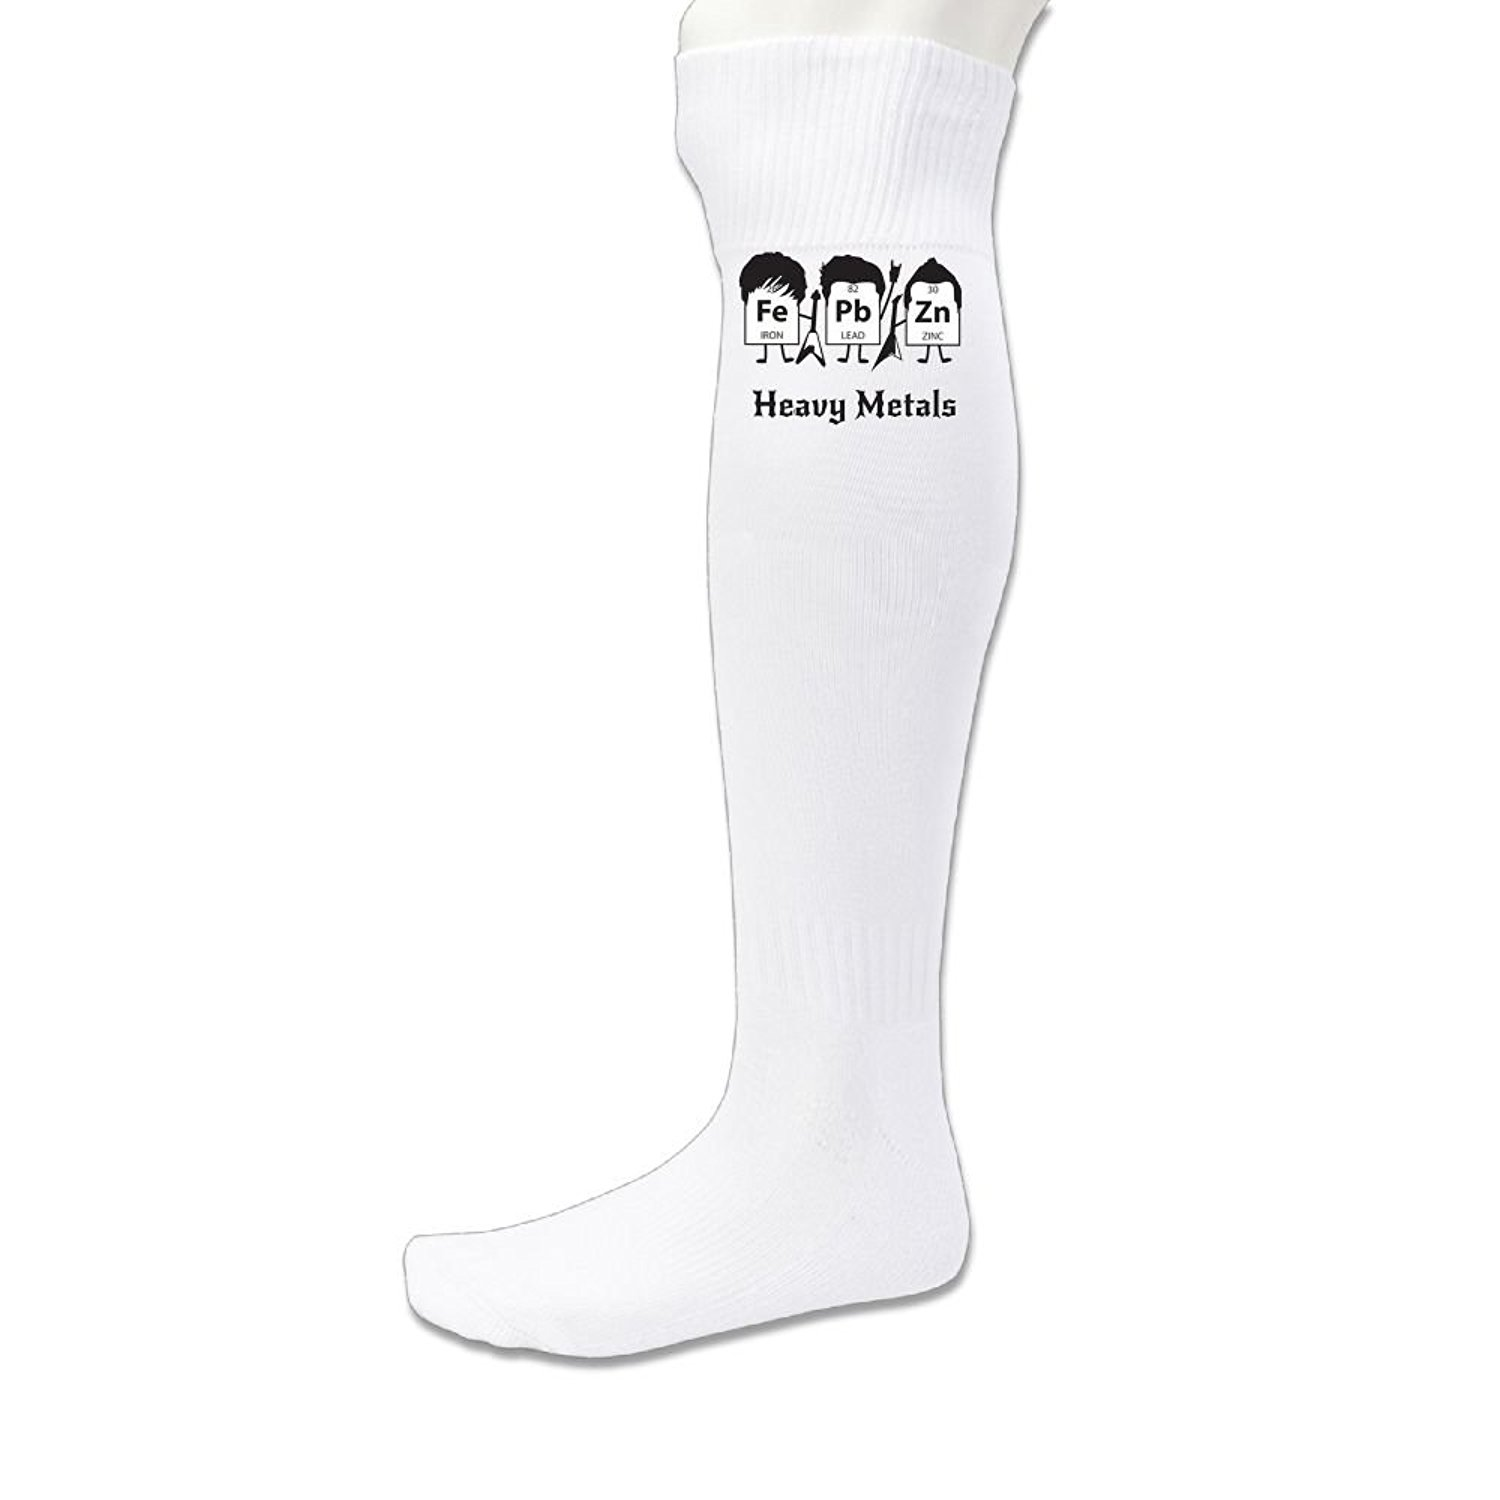 5369d85a3 Get Quotations · Hexu Men's Heavy Metals Periodic Table Science And Nerd Funny  Soccer Socks Sports Team White